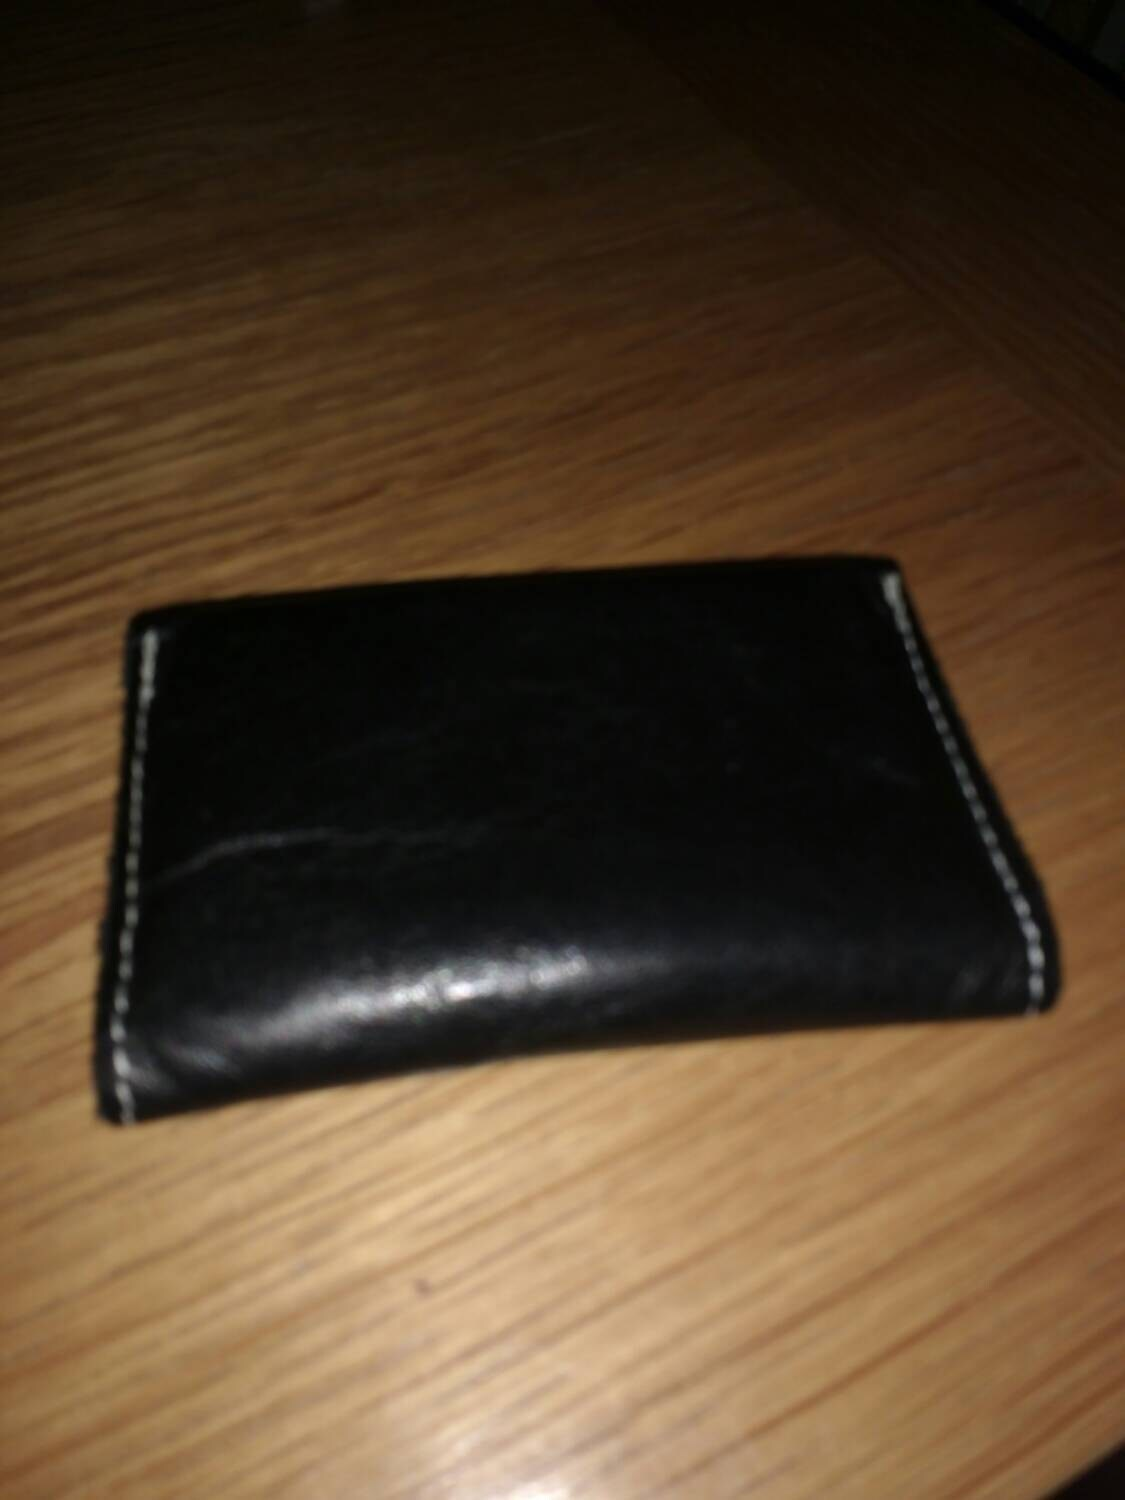 martin nicholas added a photo of their purchase